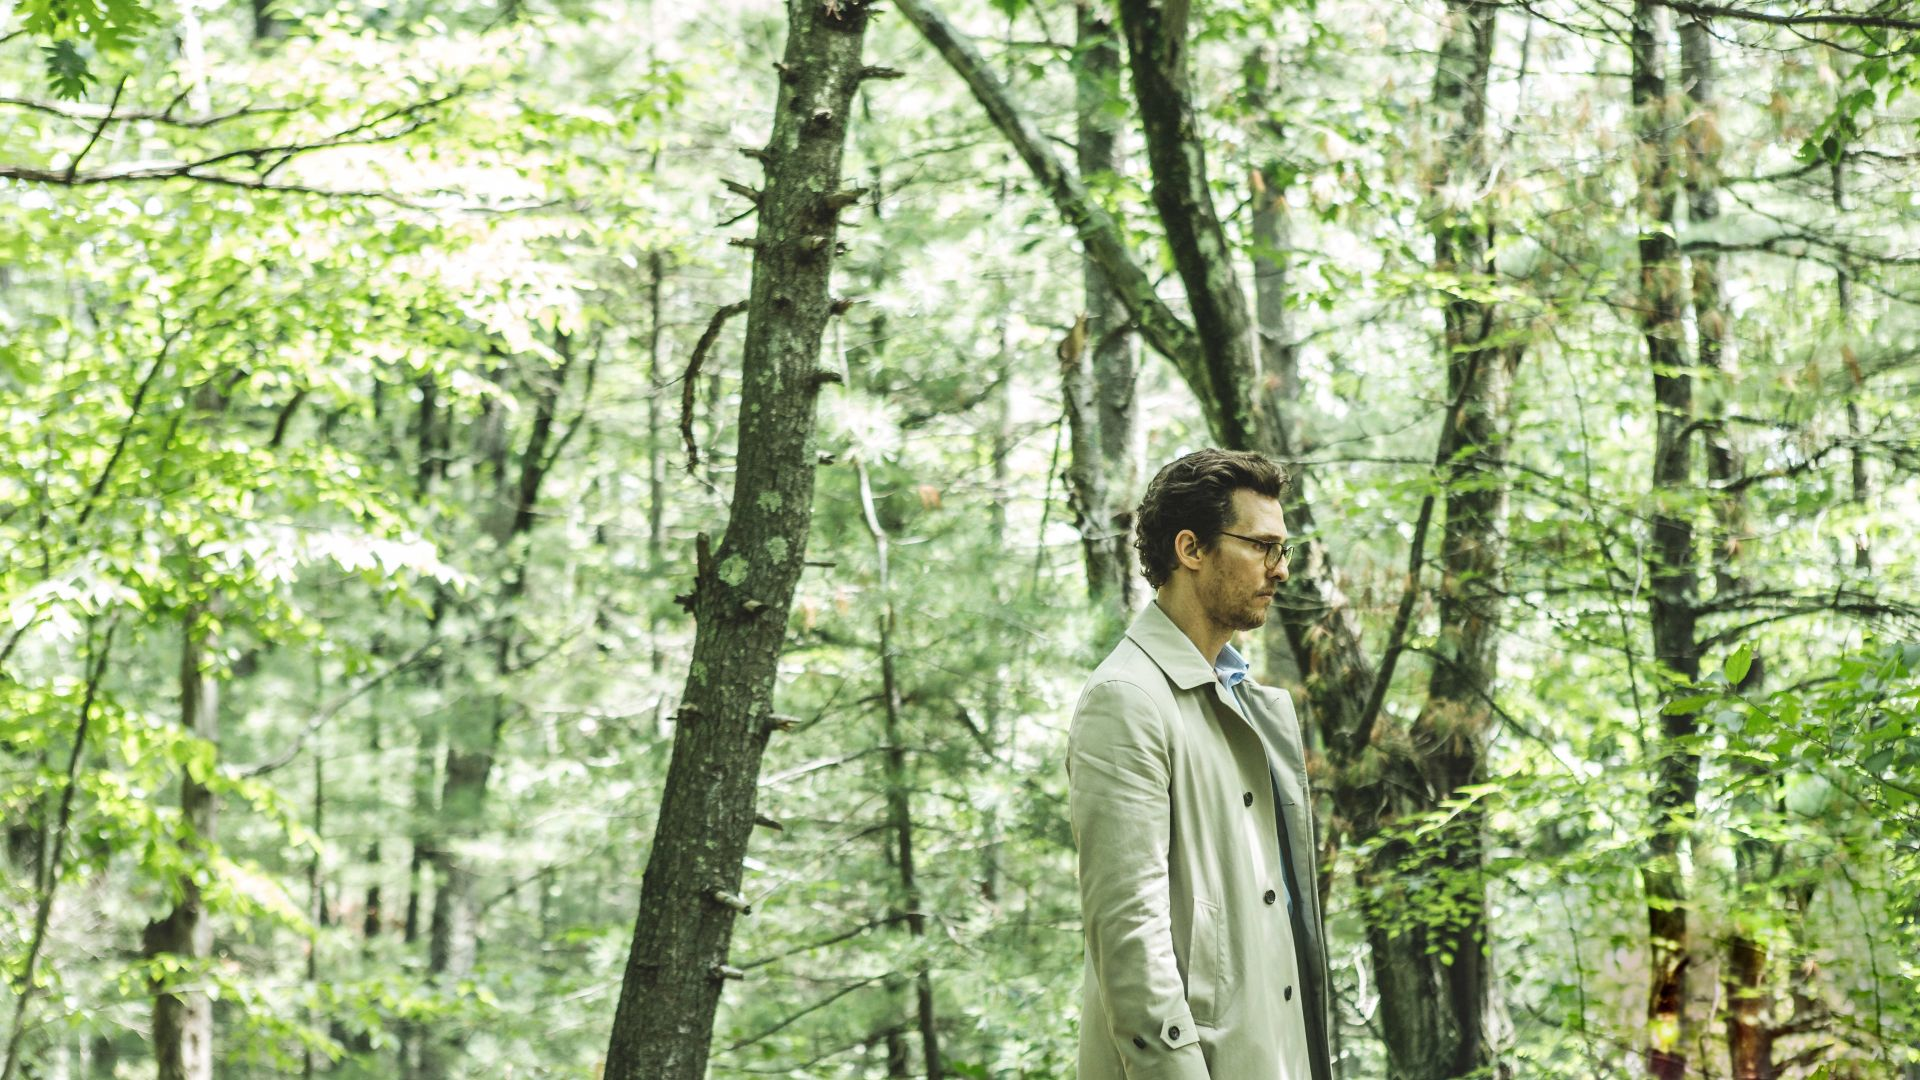 'The Sea of Trees' Review: A Touching Drama